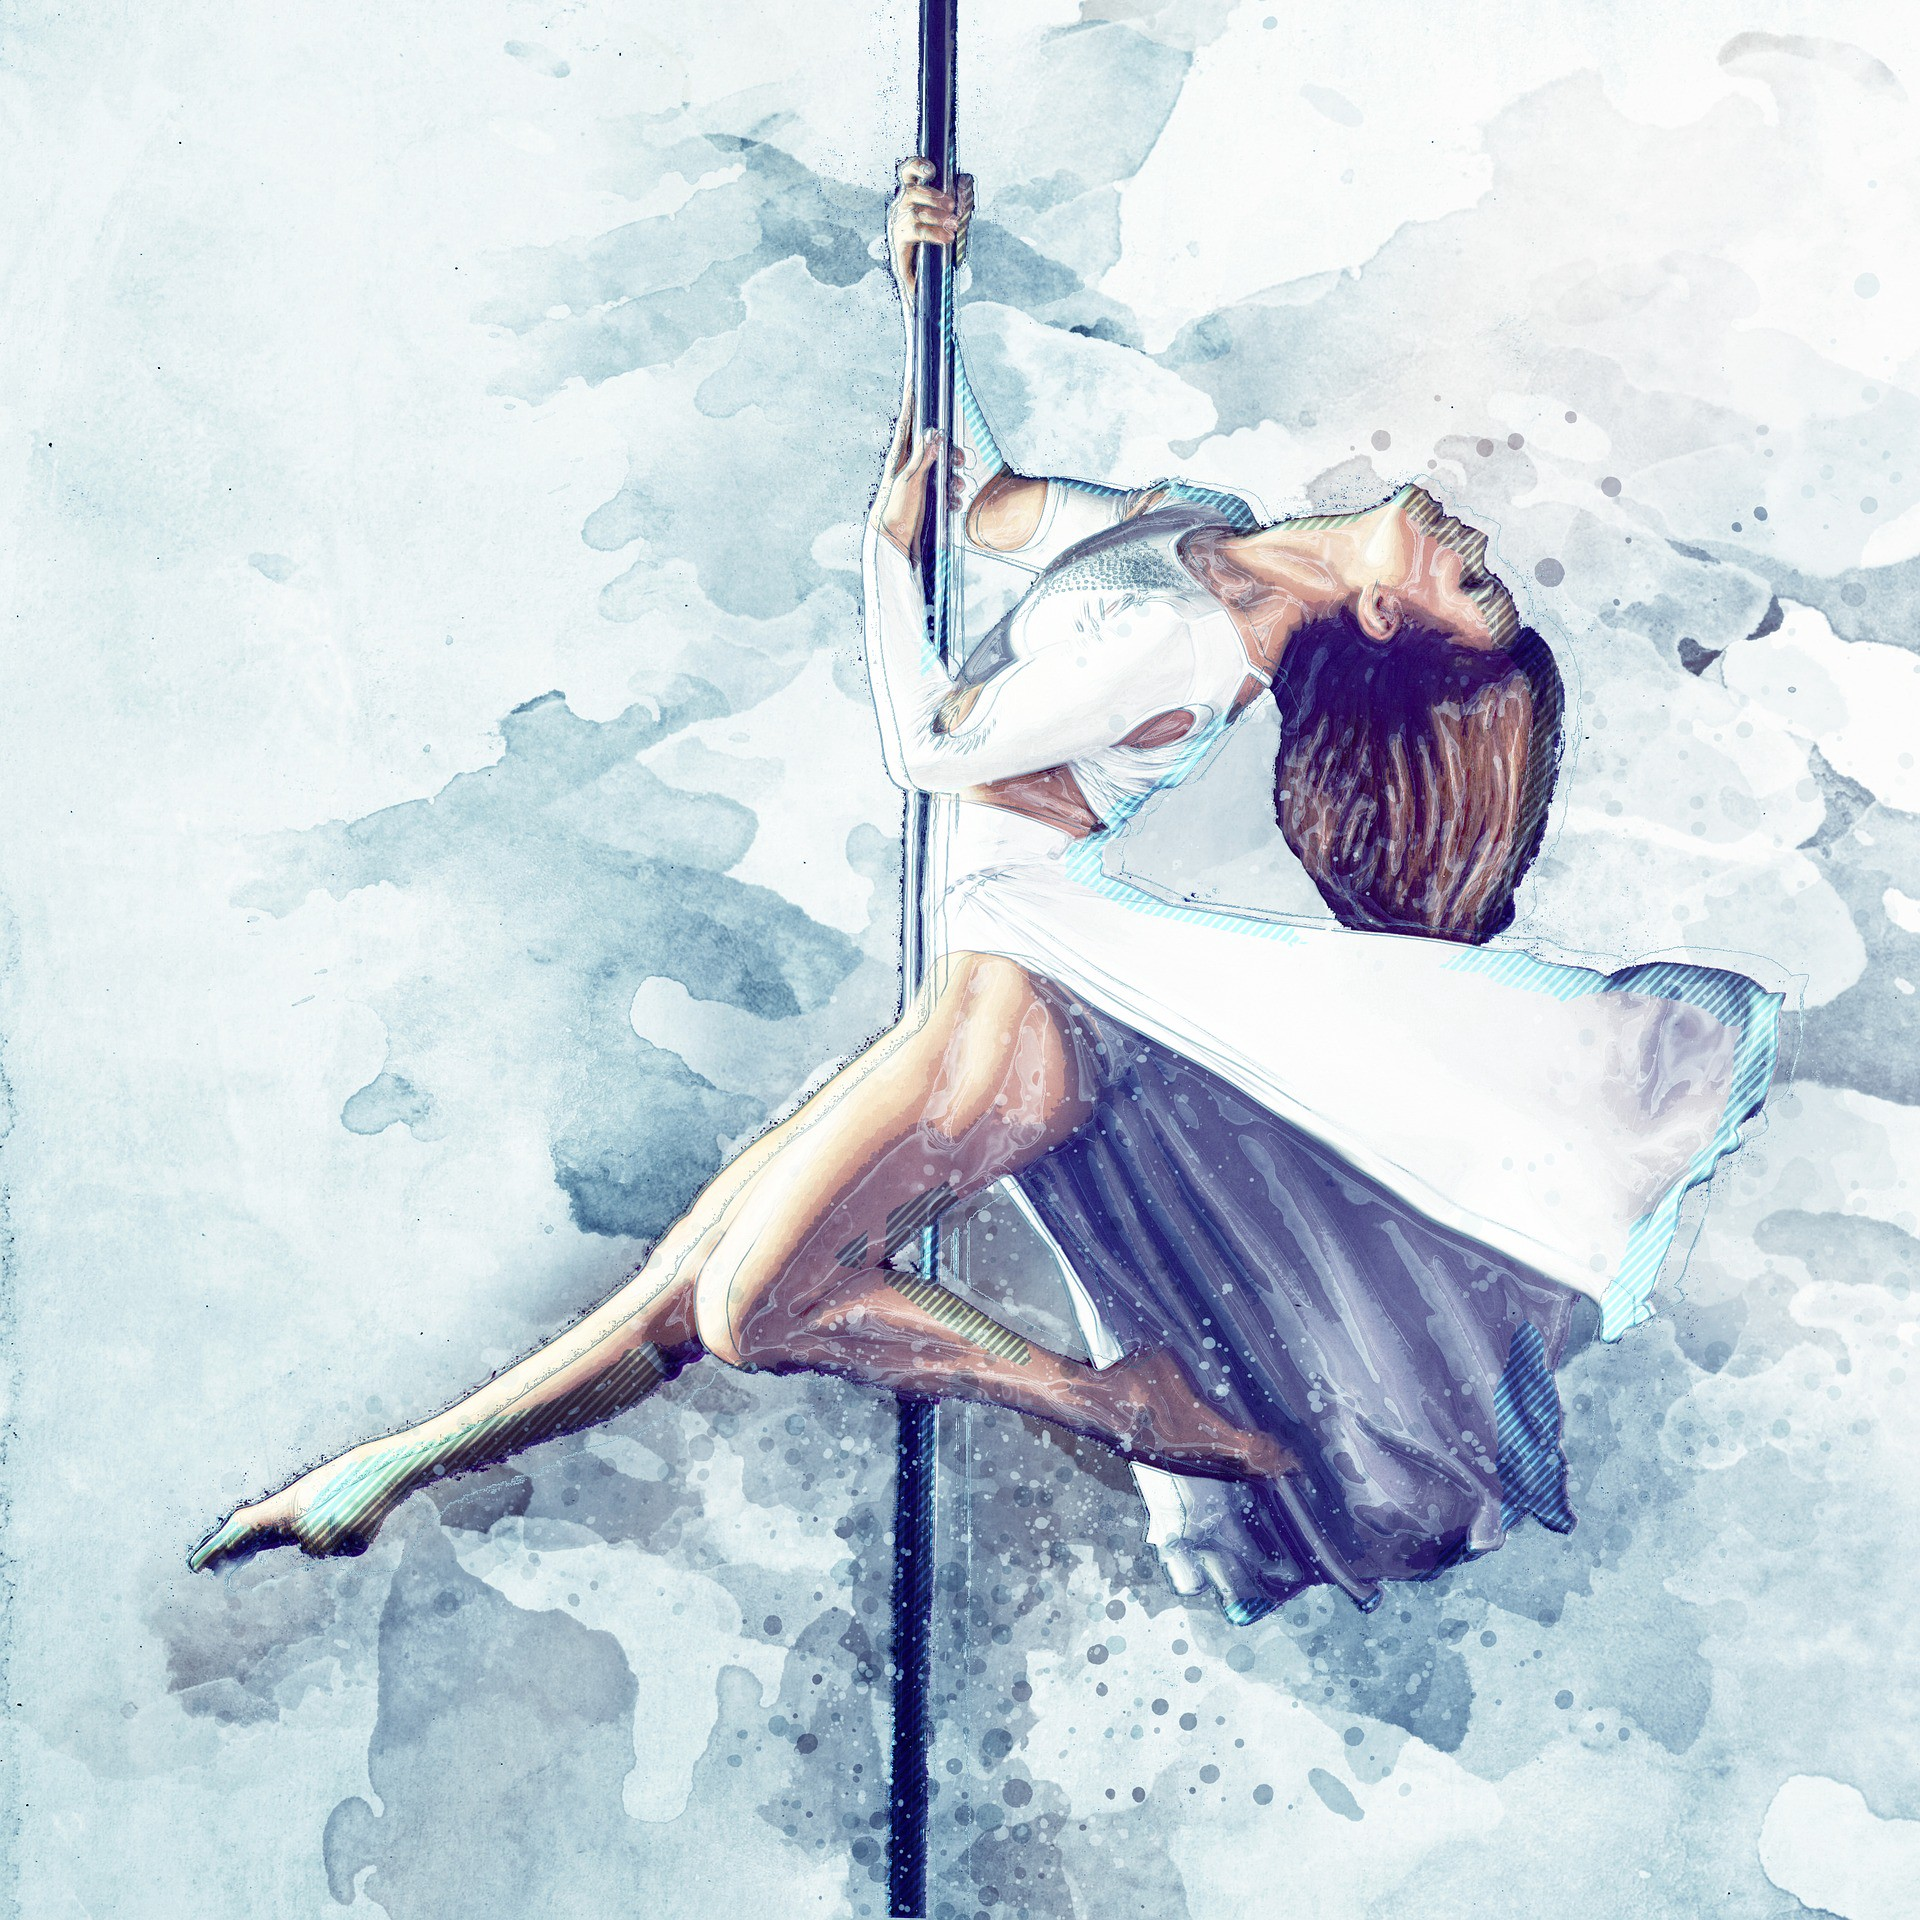 watercolor painting of pole dancer in an elegant outfit striking a pose on a pole